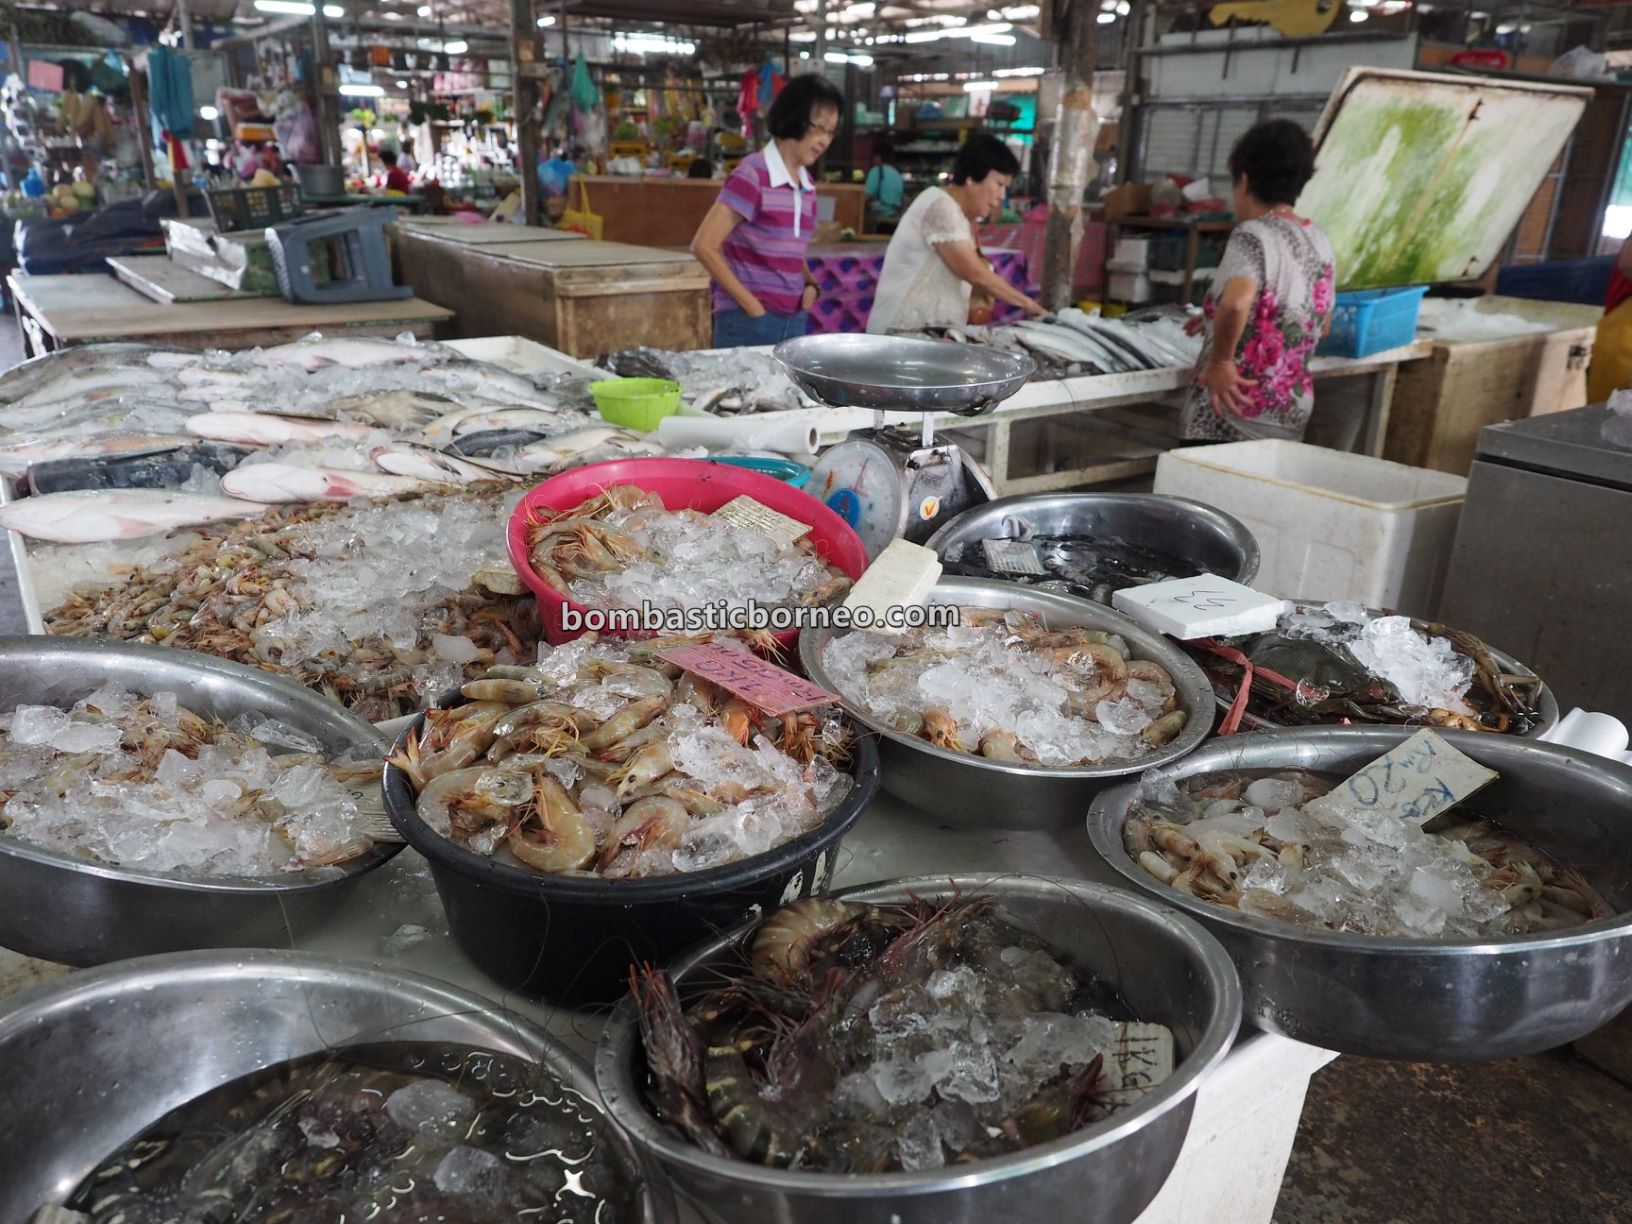 Pasar Sin On, local market, backpackers, destination, exploration, fish, lobster, makanan laut, Borneo, tourist attraction, travel guide, 婆罗洲游沙巴, 新安综合巴刹, 斗湖海鲜早市场